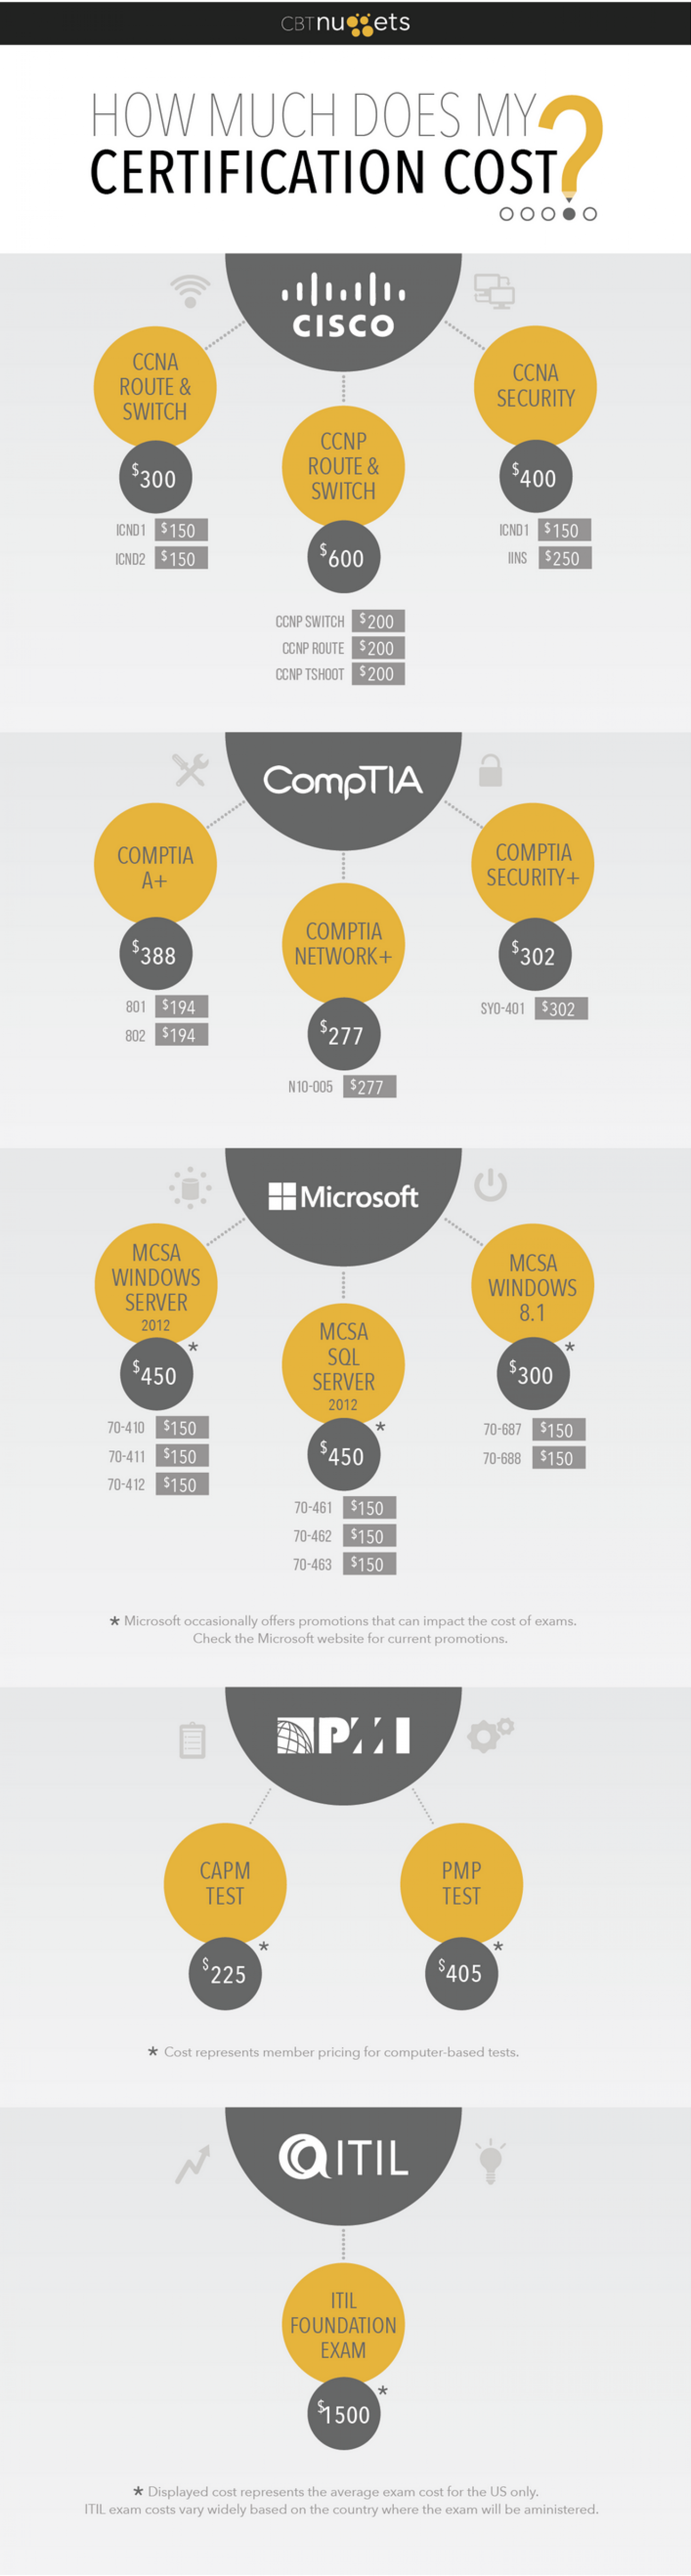 How Much Does An IT Certification Cost? Infographic